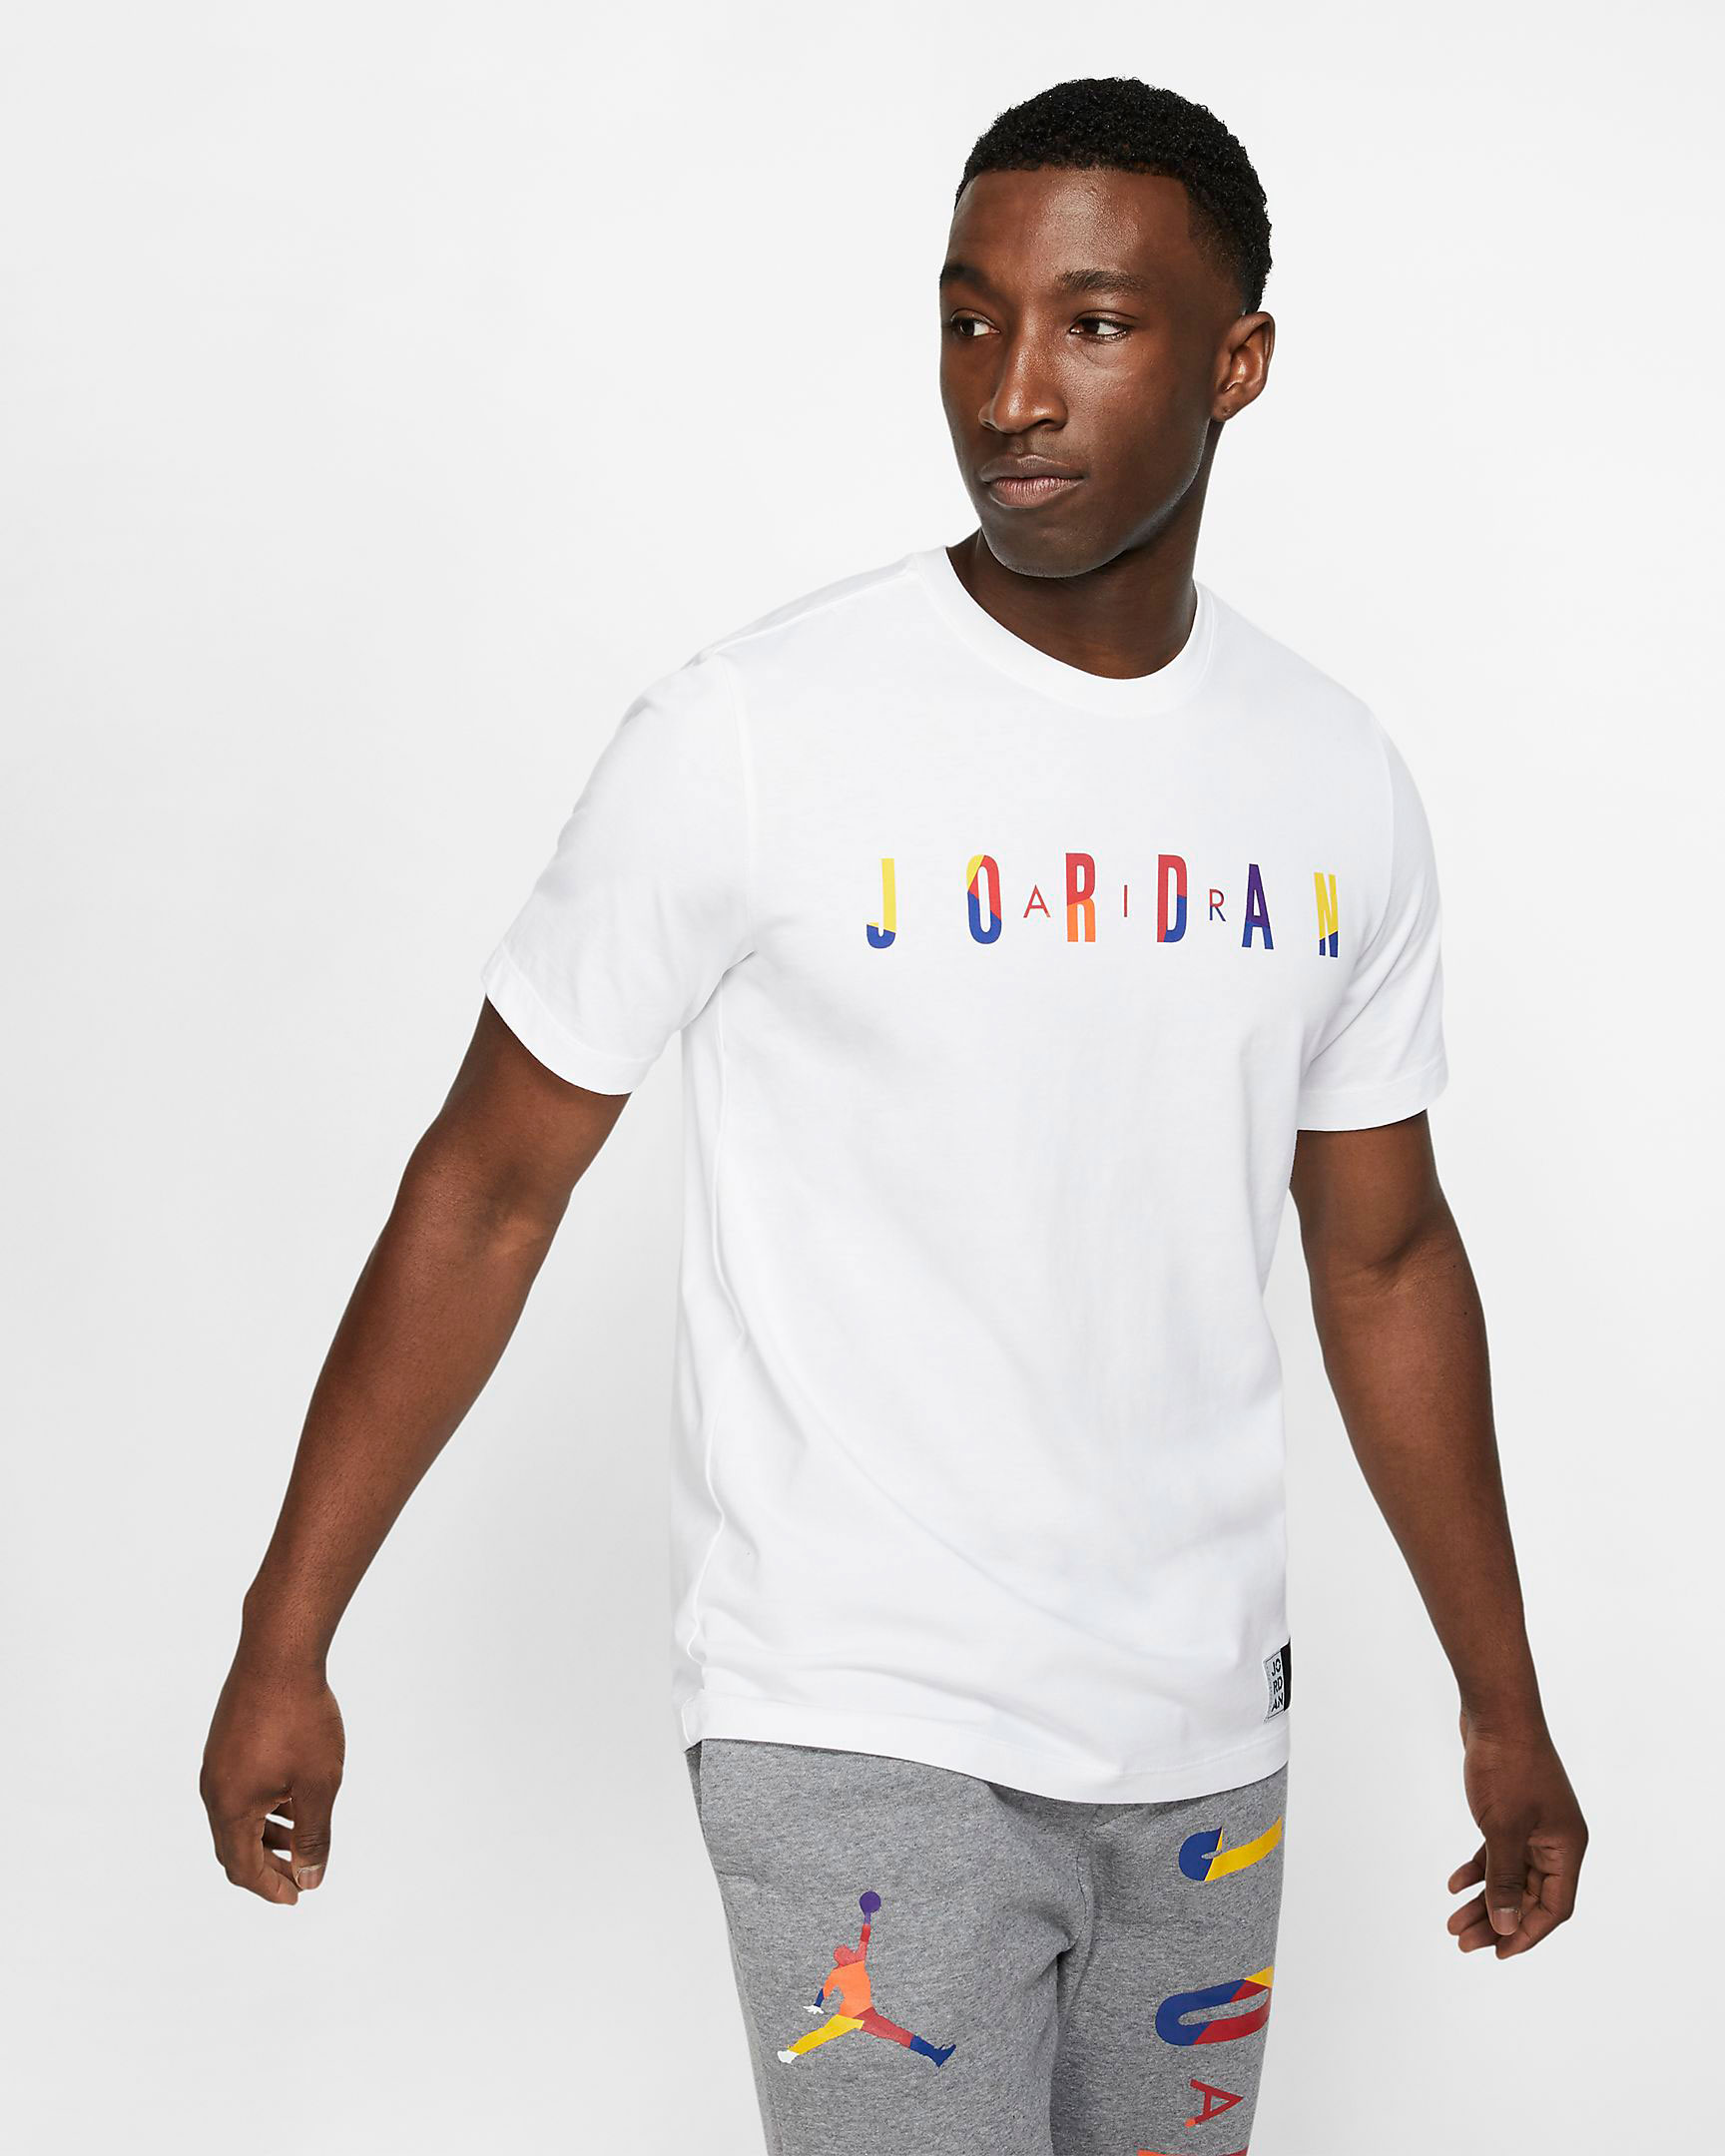 jordan-dna-shirt-white-1